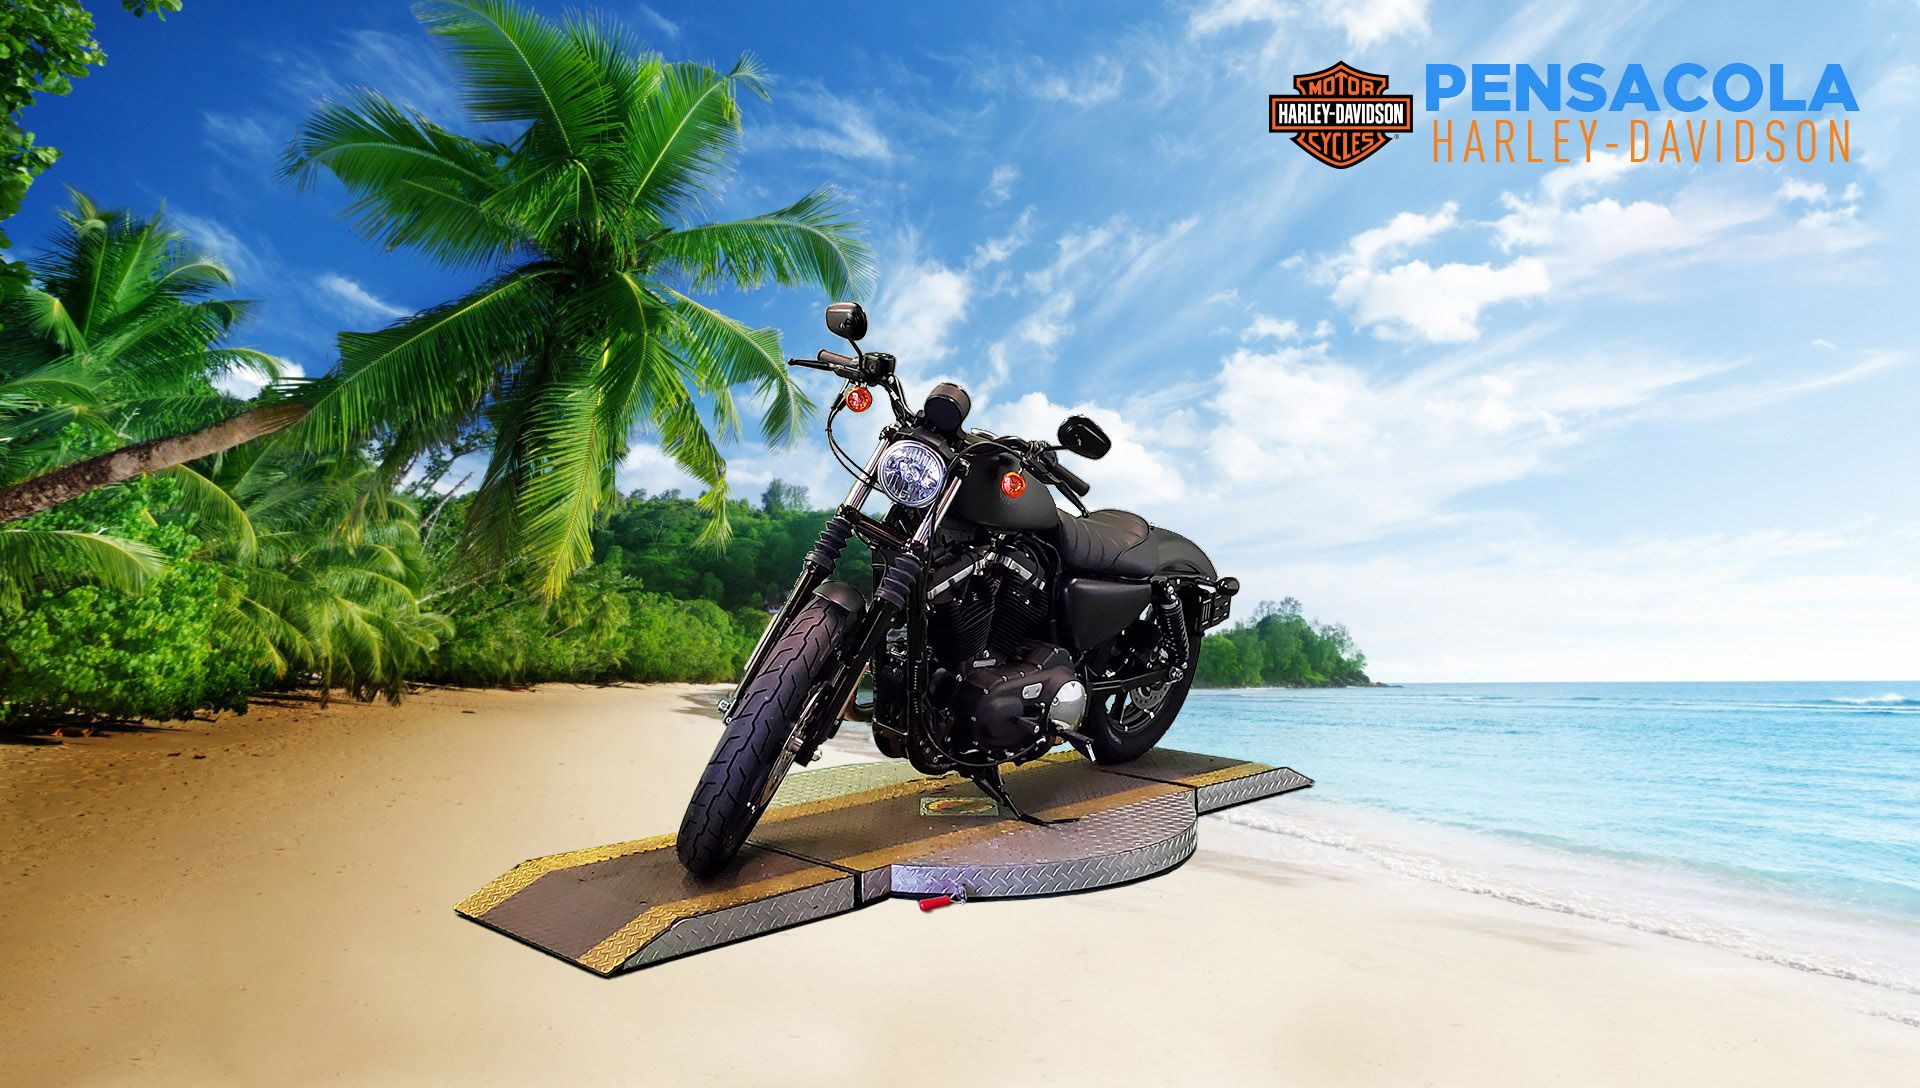 Certified Pre-Owned 2021 Harley-Davidson Iron 883 XL883N